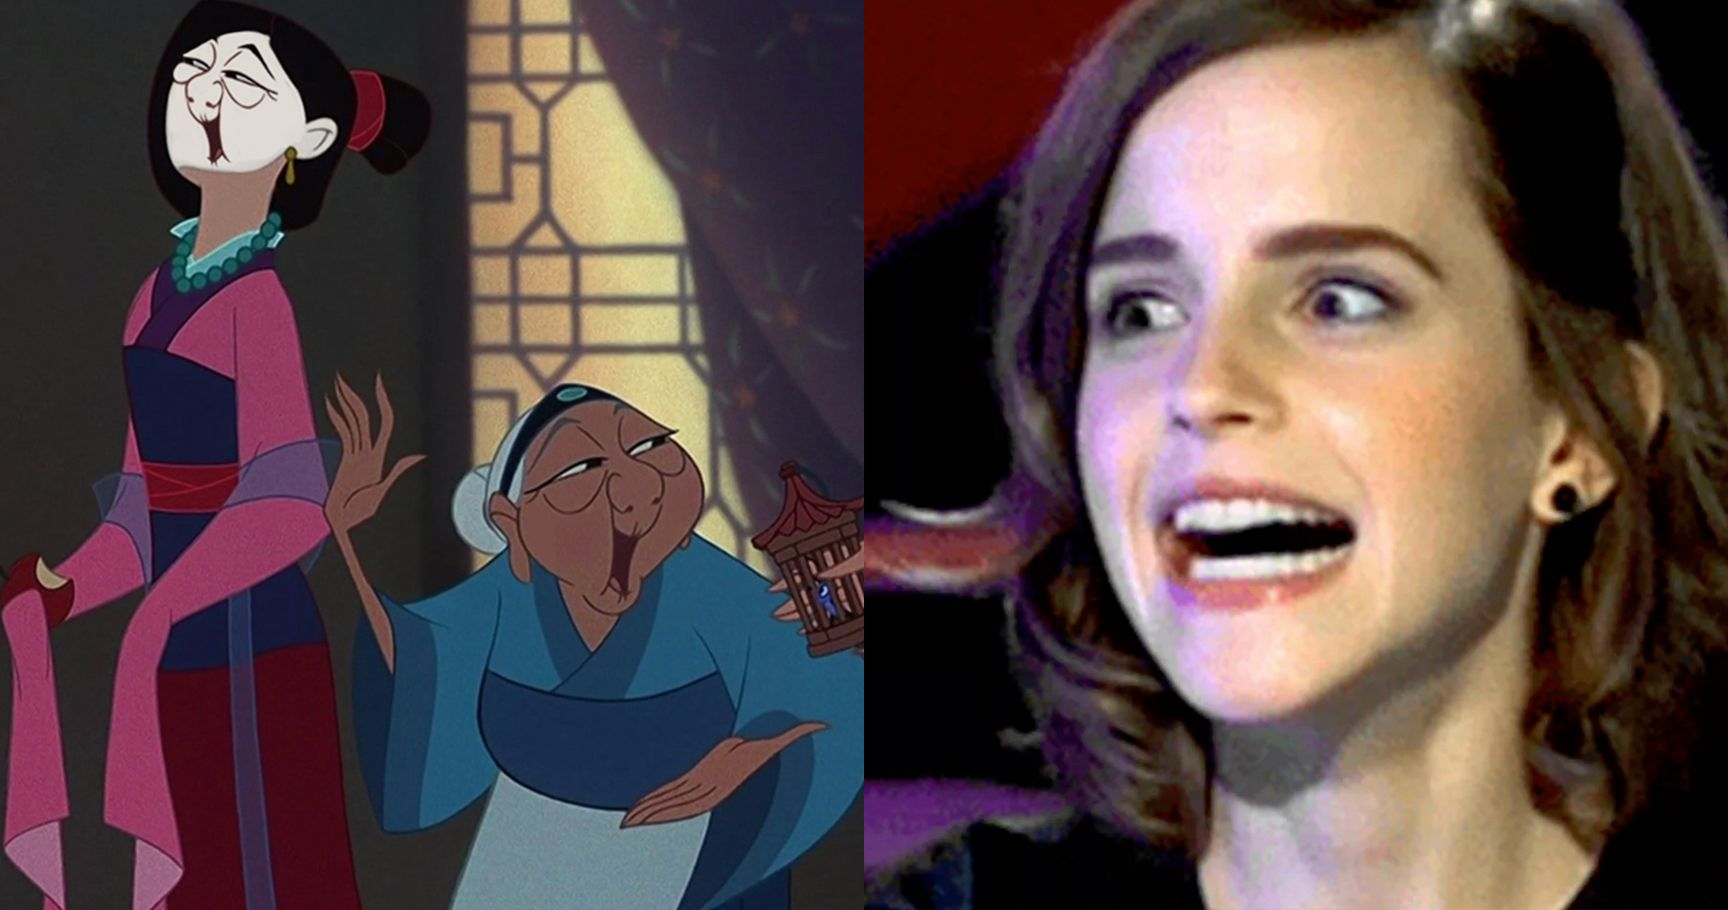 15 Horrifying Disney Face Swaps We Can't Unsee